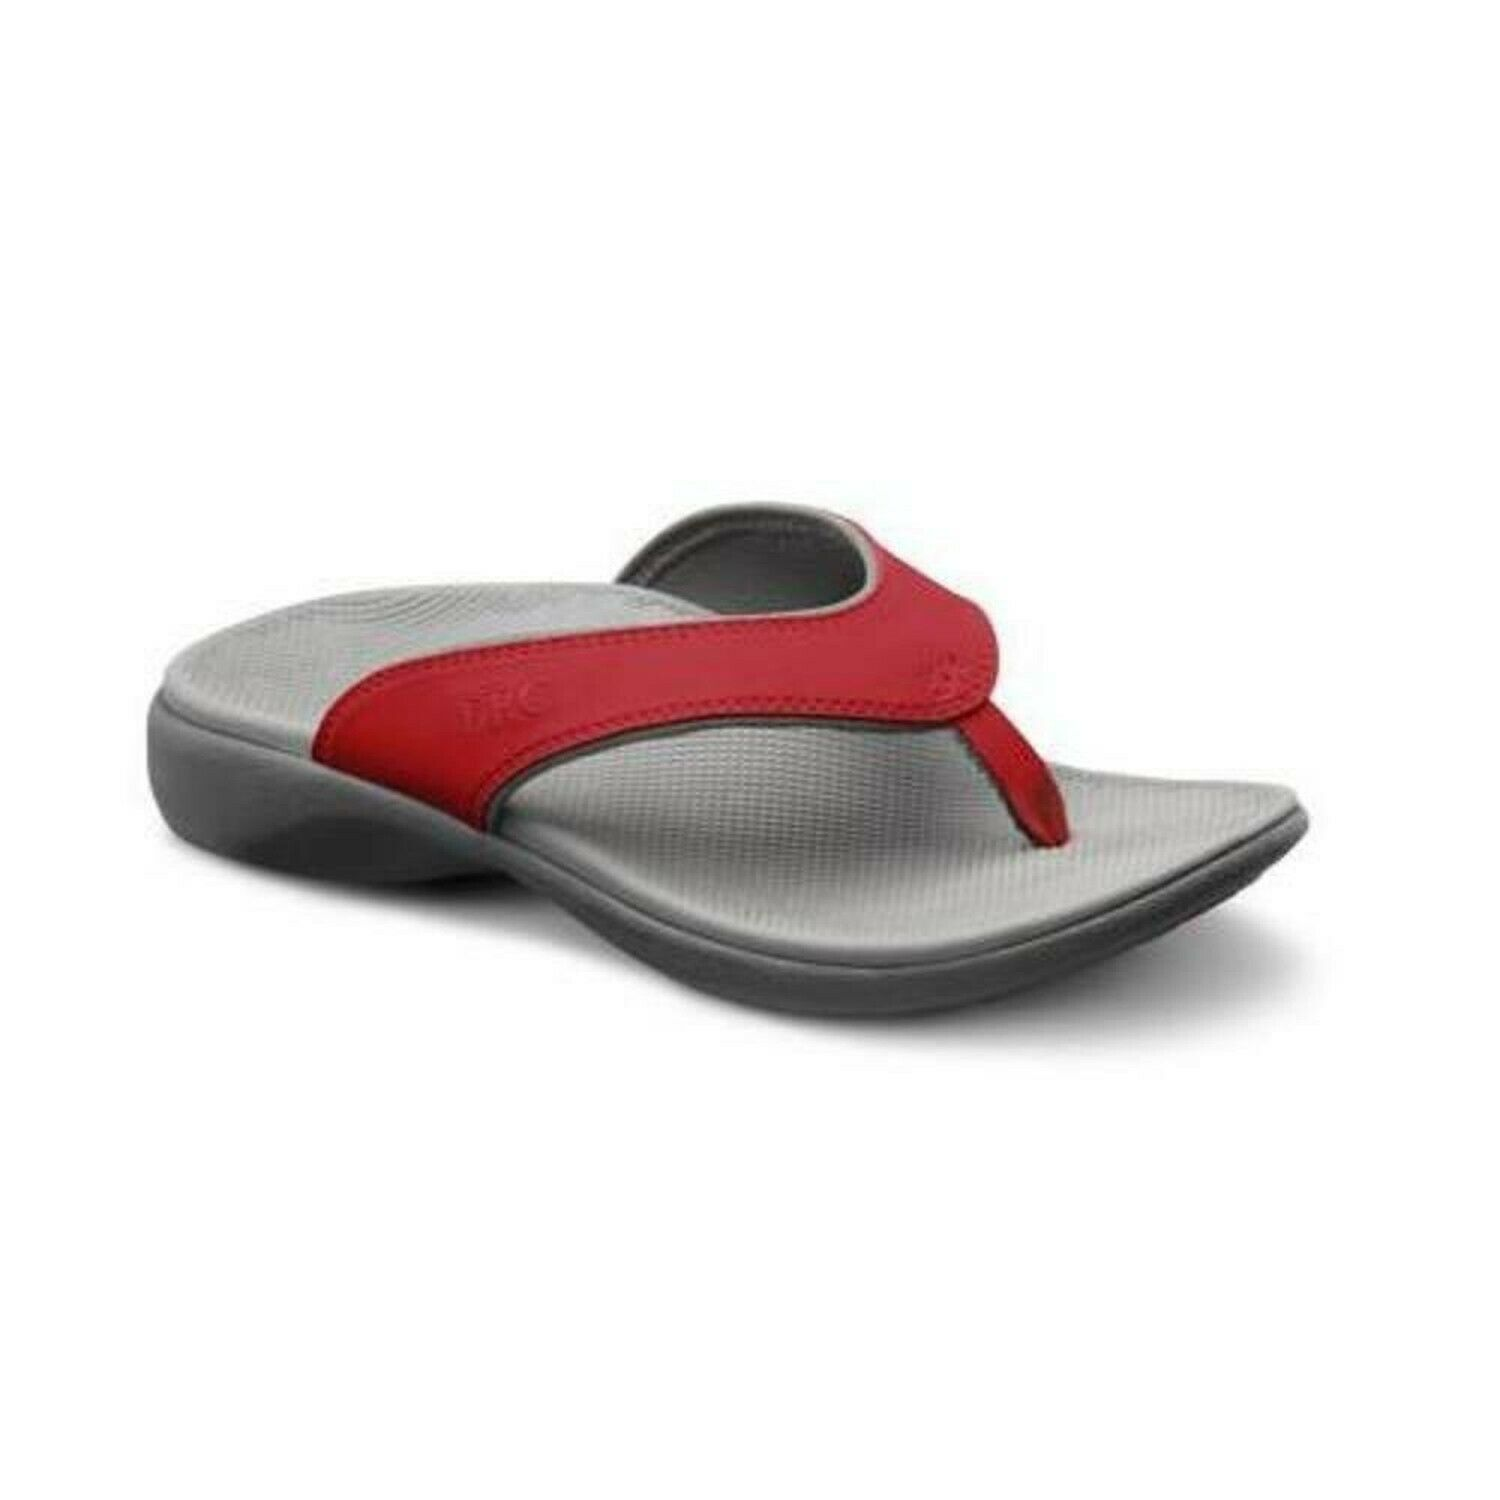 Dr. Comfort Womens Shannon Diabetic Orthotic Thong Slipper  Red 10 (C D) US